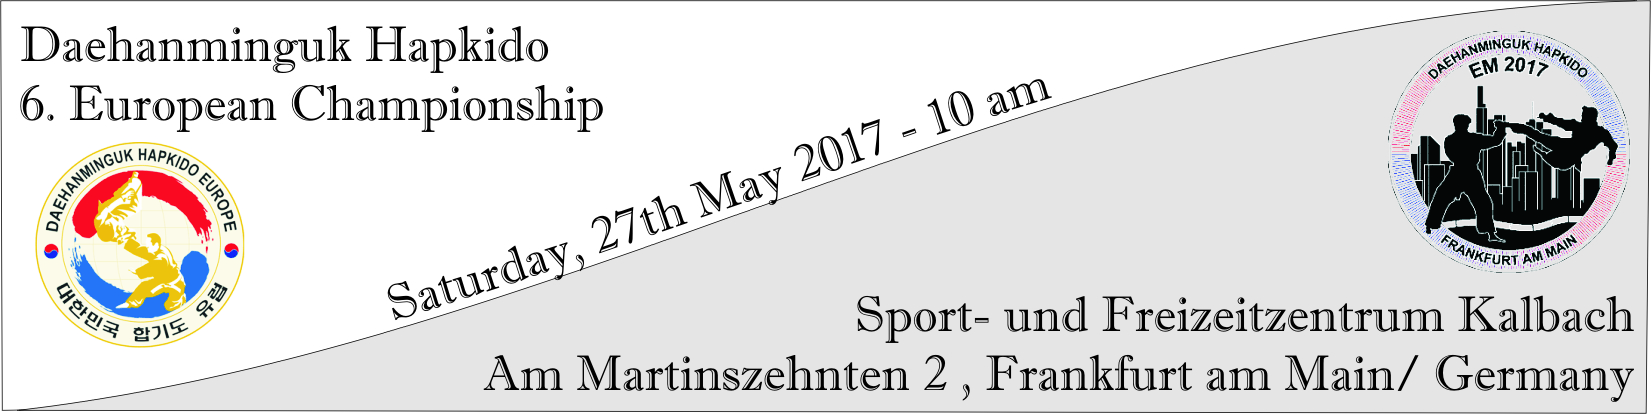 Championship 2017 – Frankfurt am Main / Germany